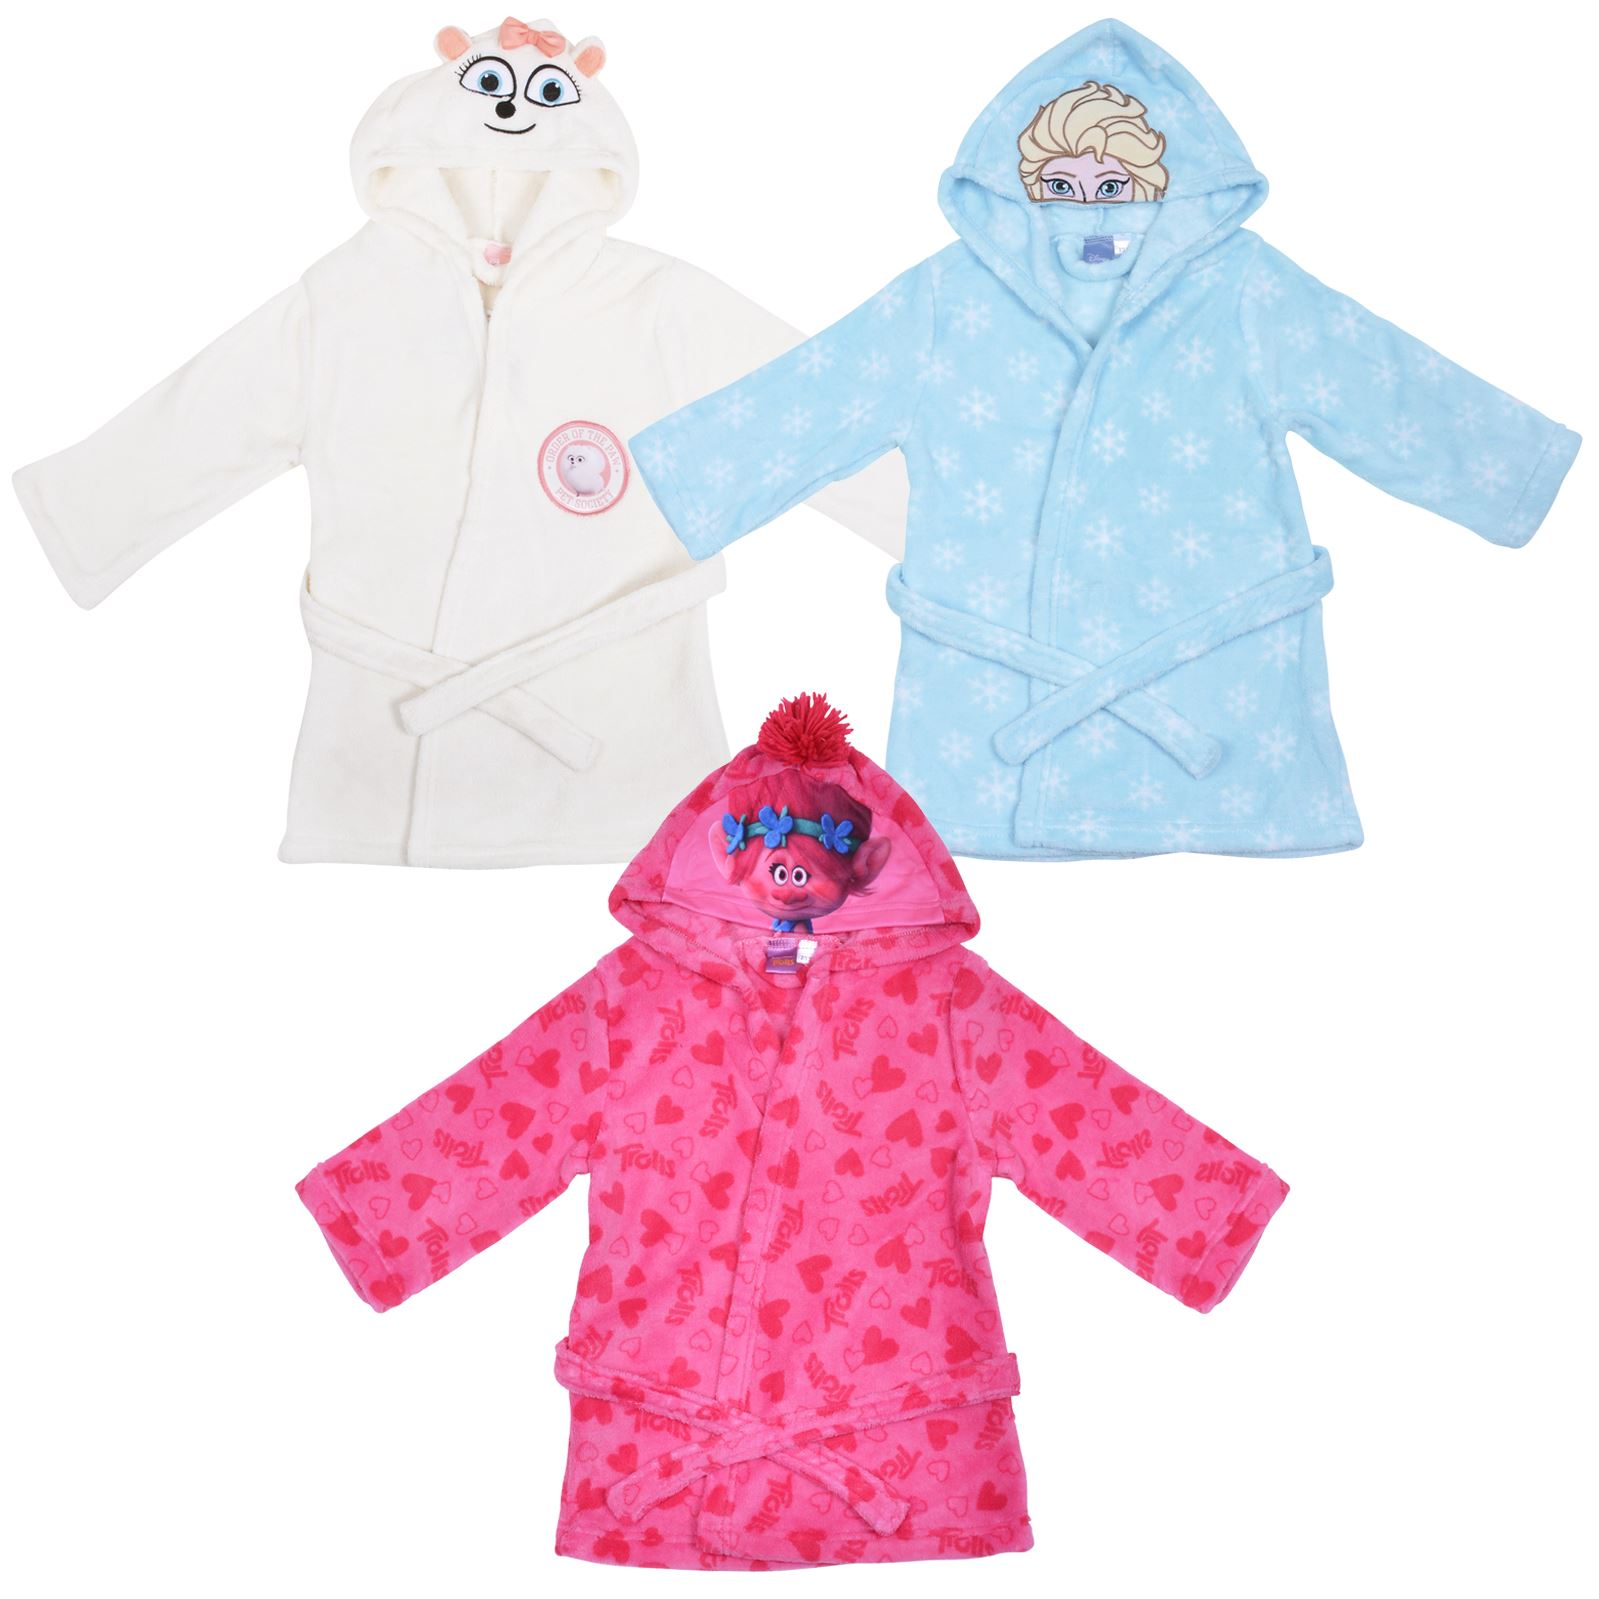 GIRLS FLEECE DRESSING Gown Hooded Bath Robe Home Bedtime Pyjamas PJs ... 4270a3b8c